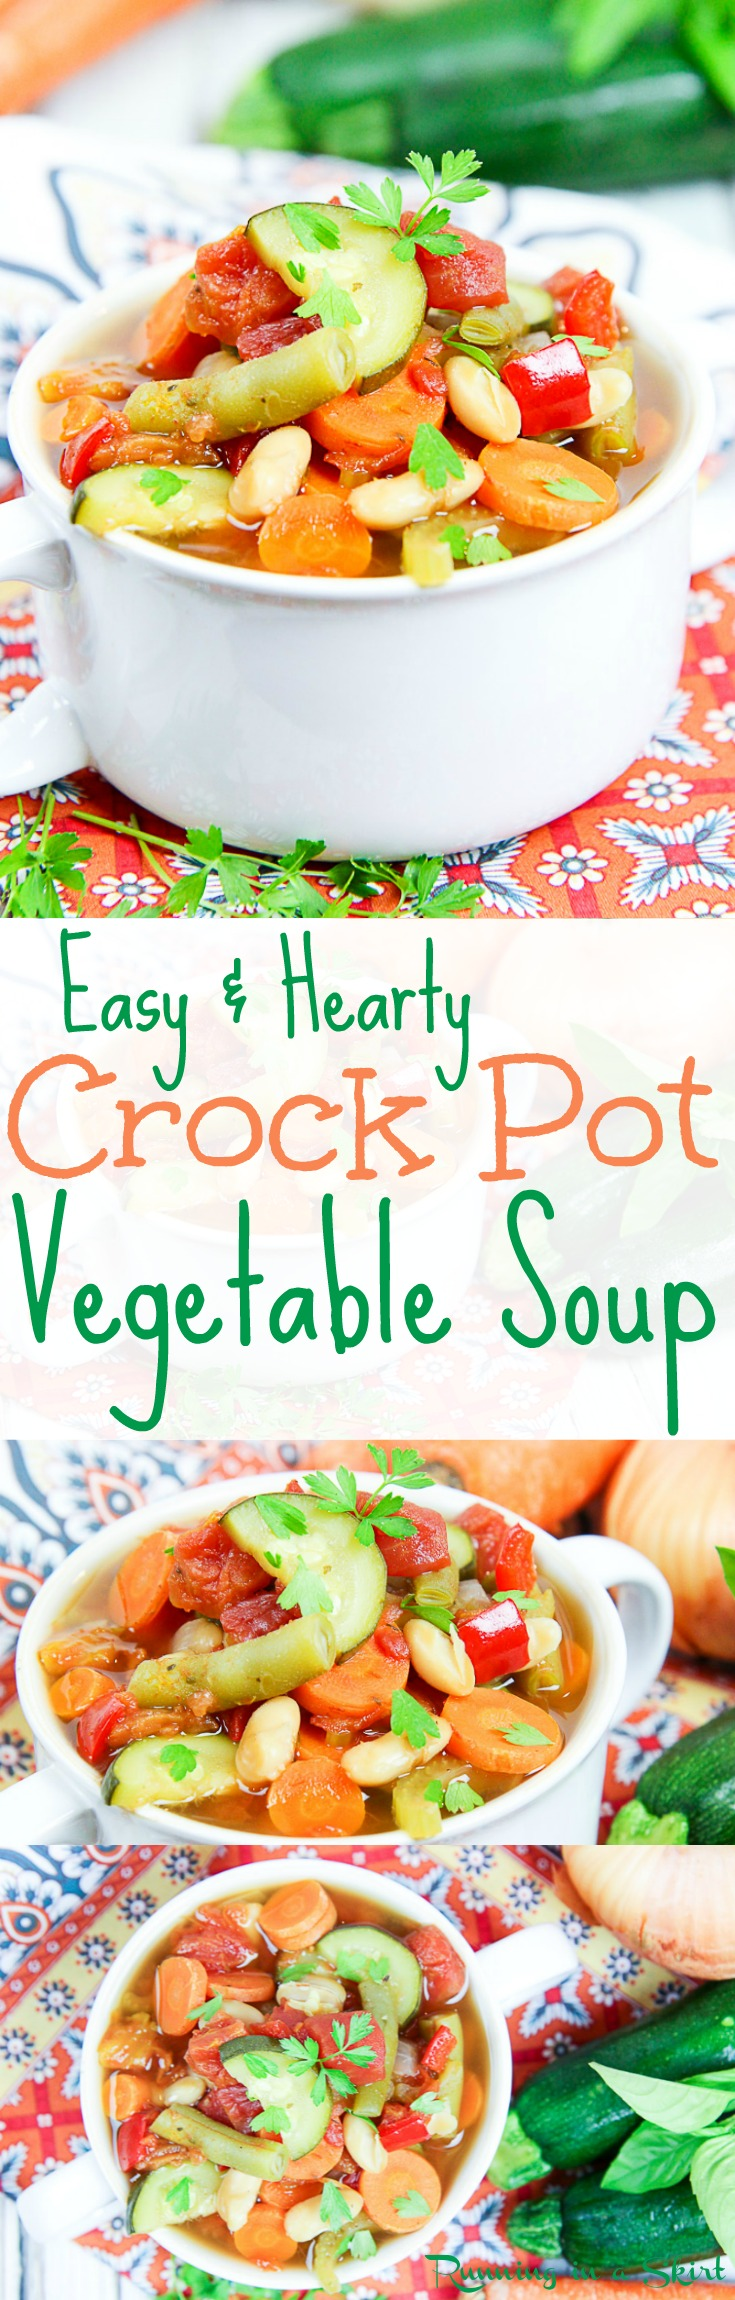 Easy crock pot vegetable soup running in a skirt part 2 for Healthy vegetarian crock pot recipes easy